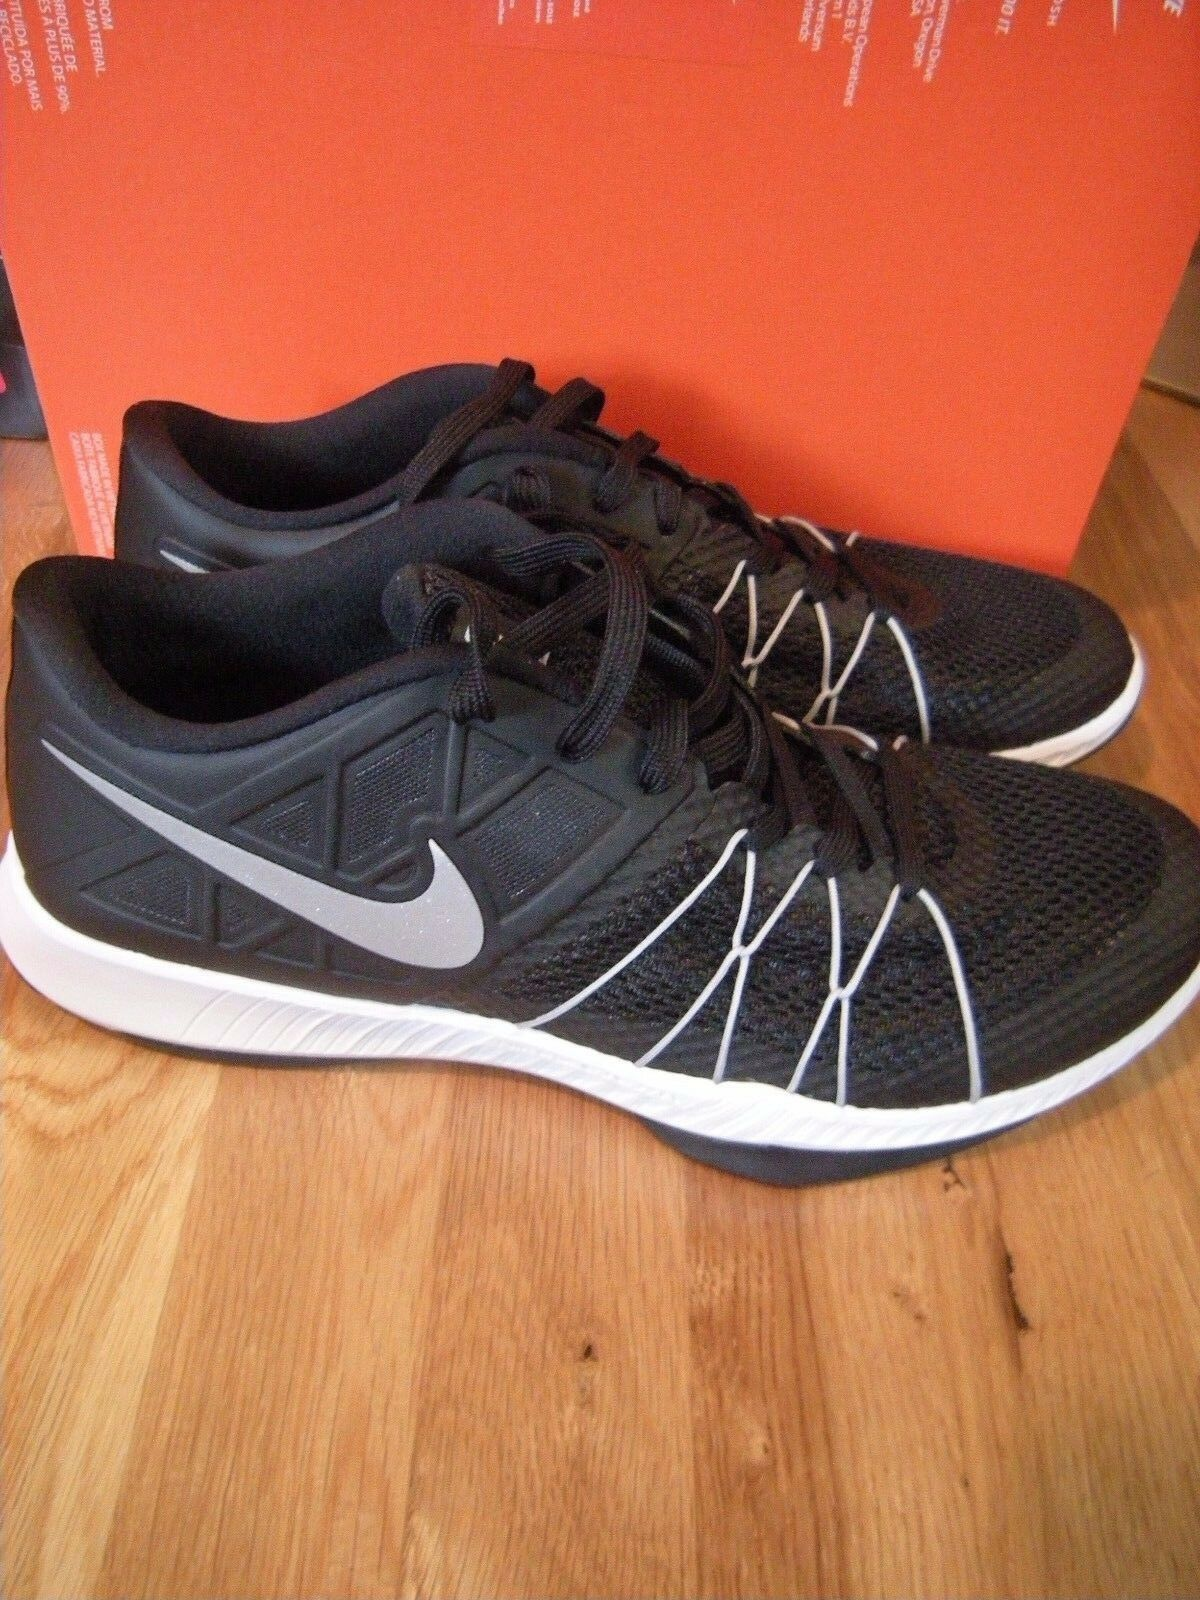 Brand New Mens Black & White Nike Zoom Train Incredibly Fast Shoes, Size 11.5